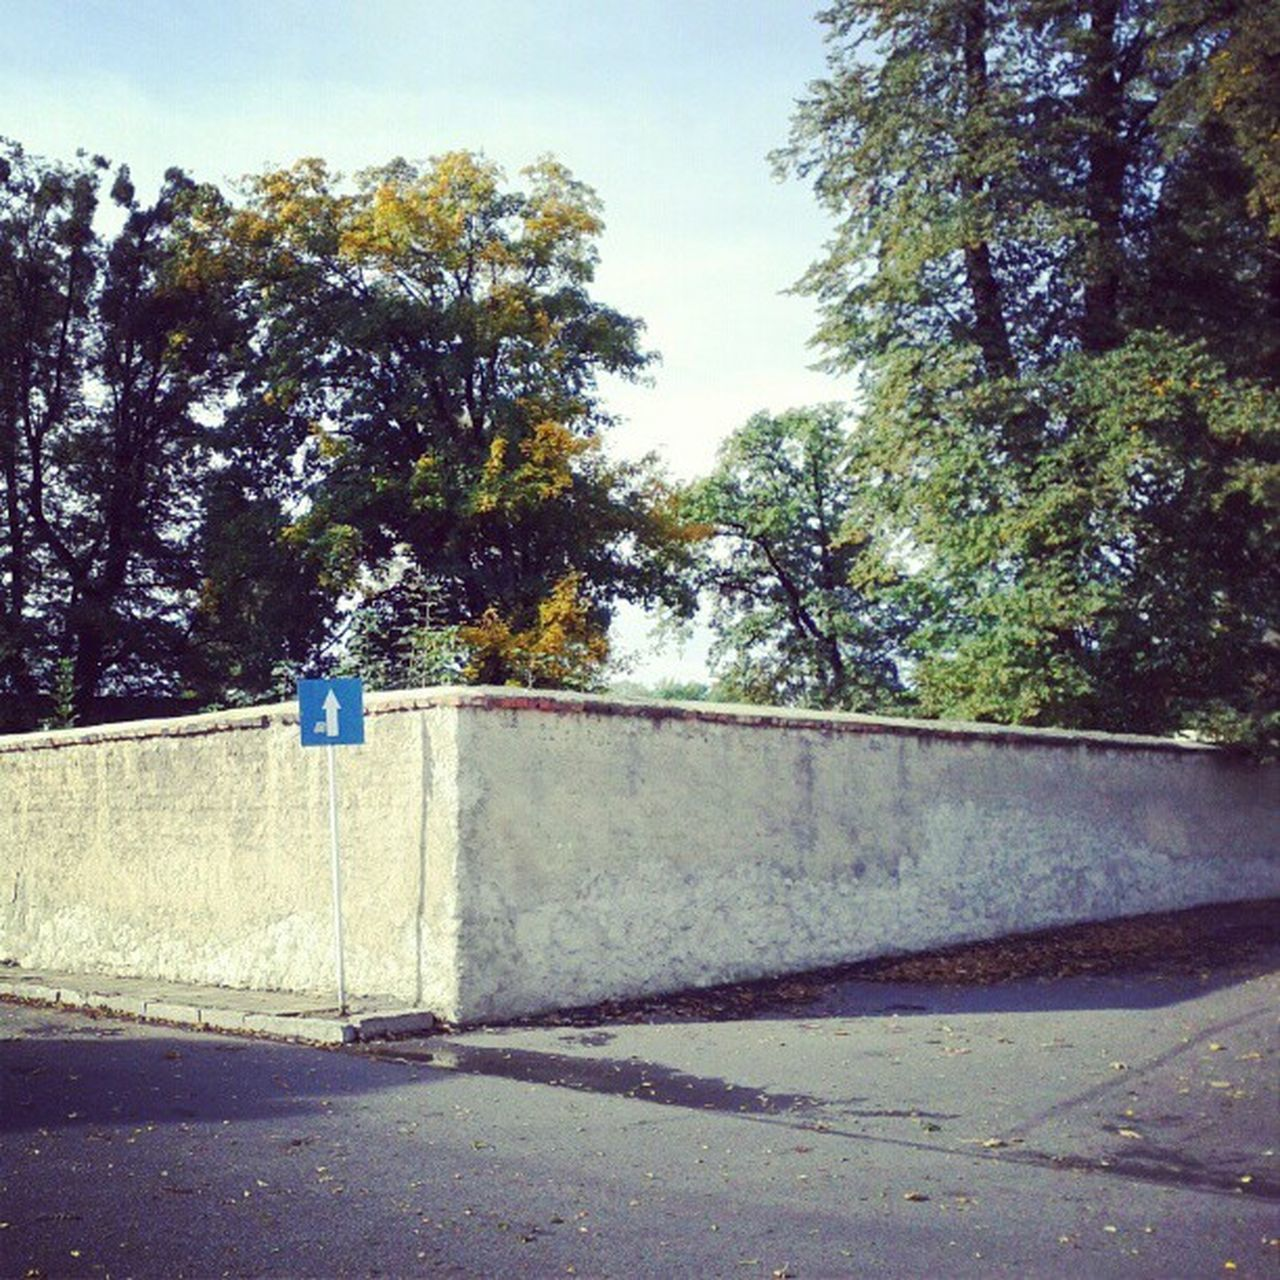 #igerscycling #igersberlin #igers #instagram #instatalent #cycling #traveling #Android #androidography #structure #nature #wall #samsung #tumblr Igersberlin Igerscycling Traveling Nature Structure Cycling Wall Tumblr Android Instagram Samsung Androidography Igers Instatalent